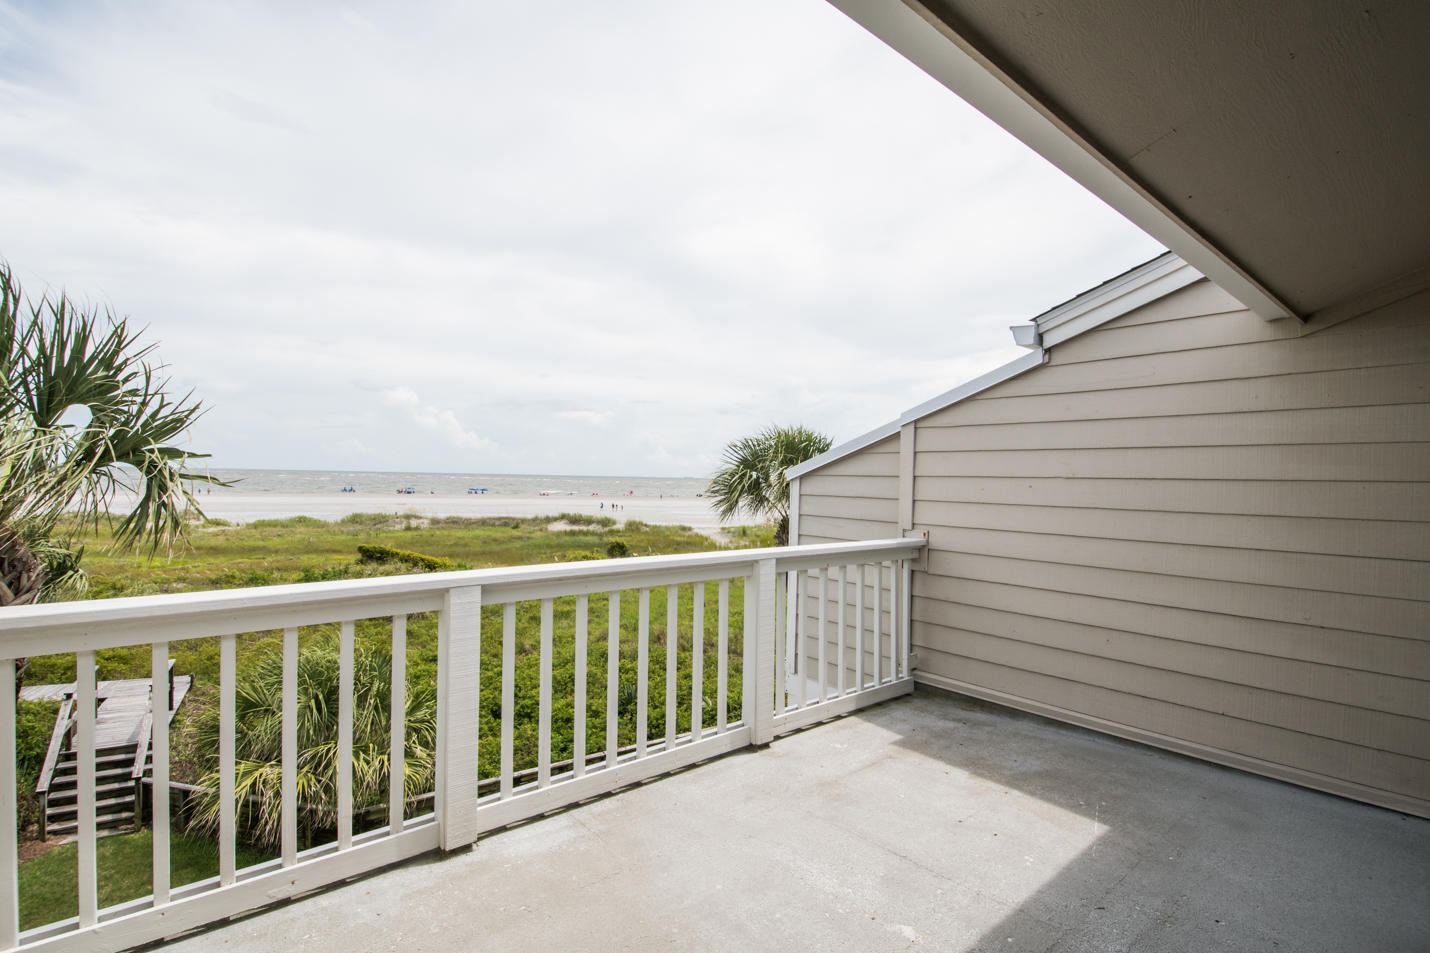 Beach Club Villas Homes For Sale - 66 Beach Club Villas, Isle of Palms, SC - 31